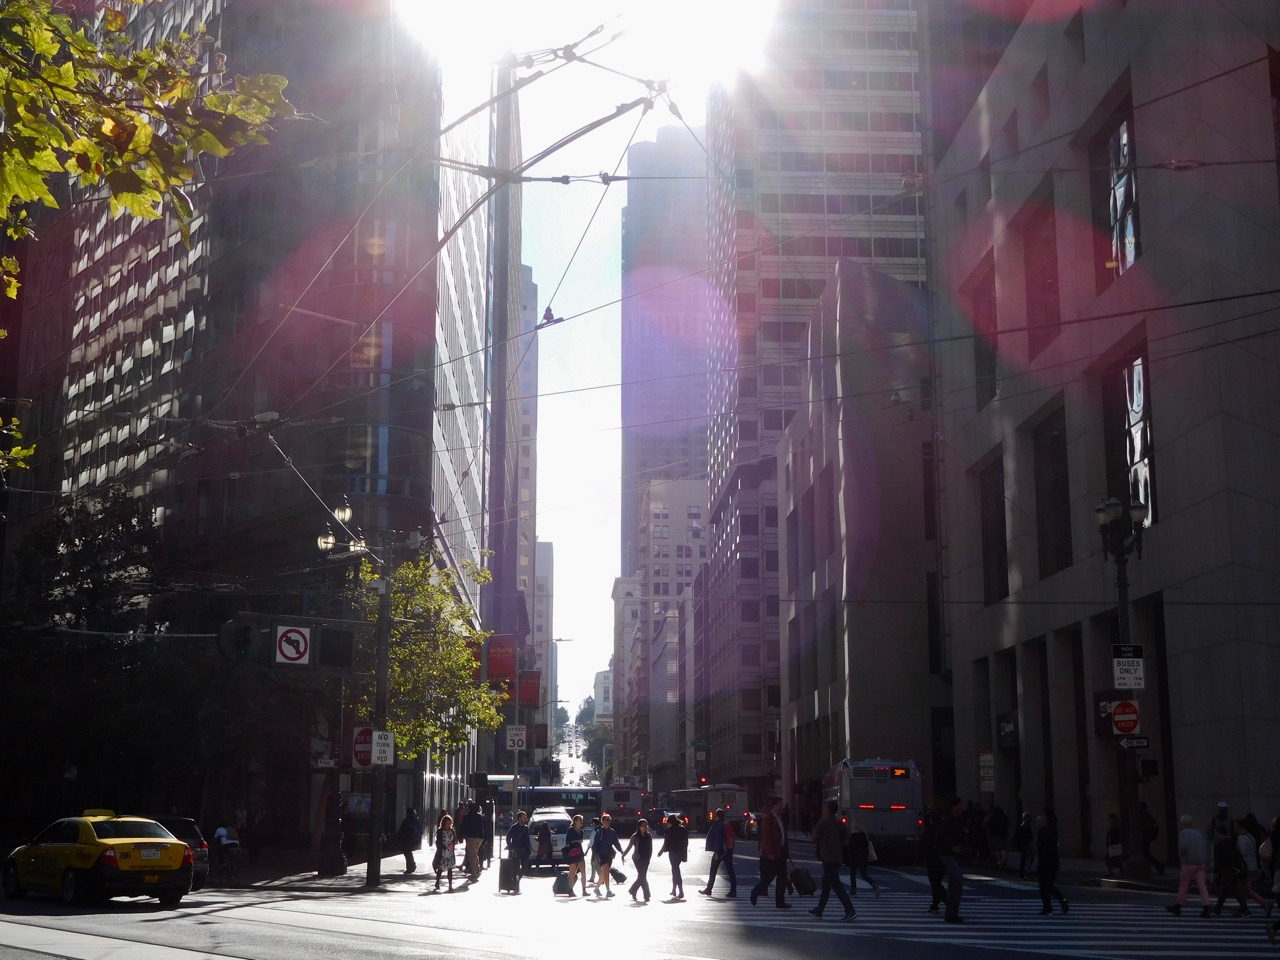 San Francisco Photo Journal - a day in SF (1)